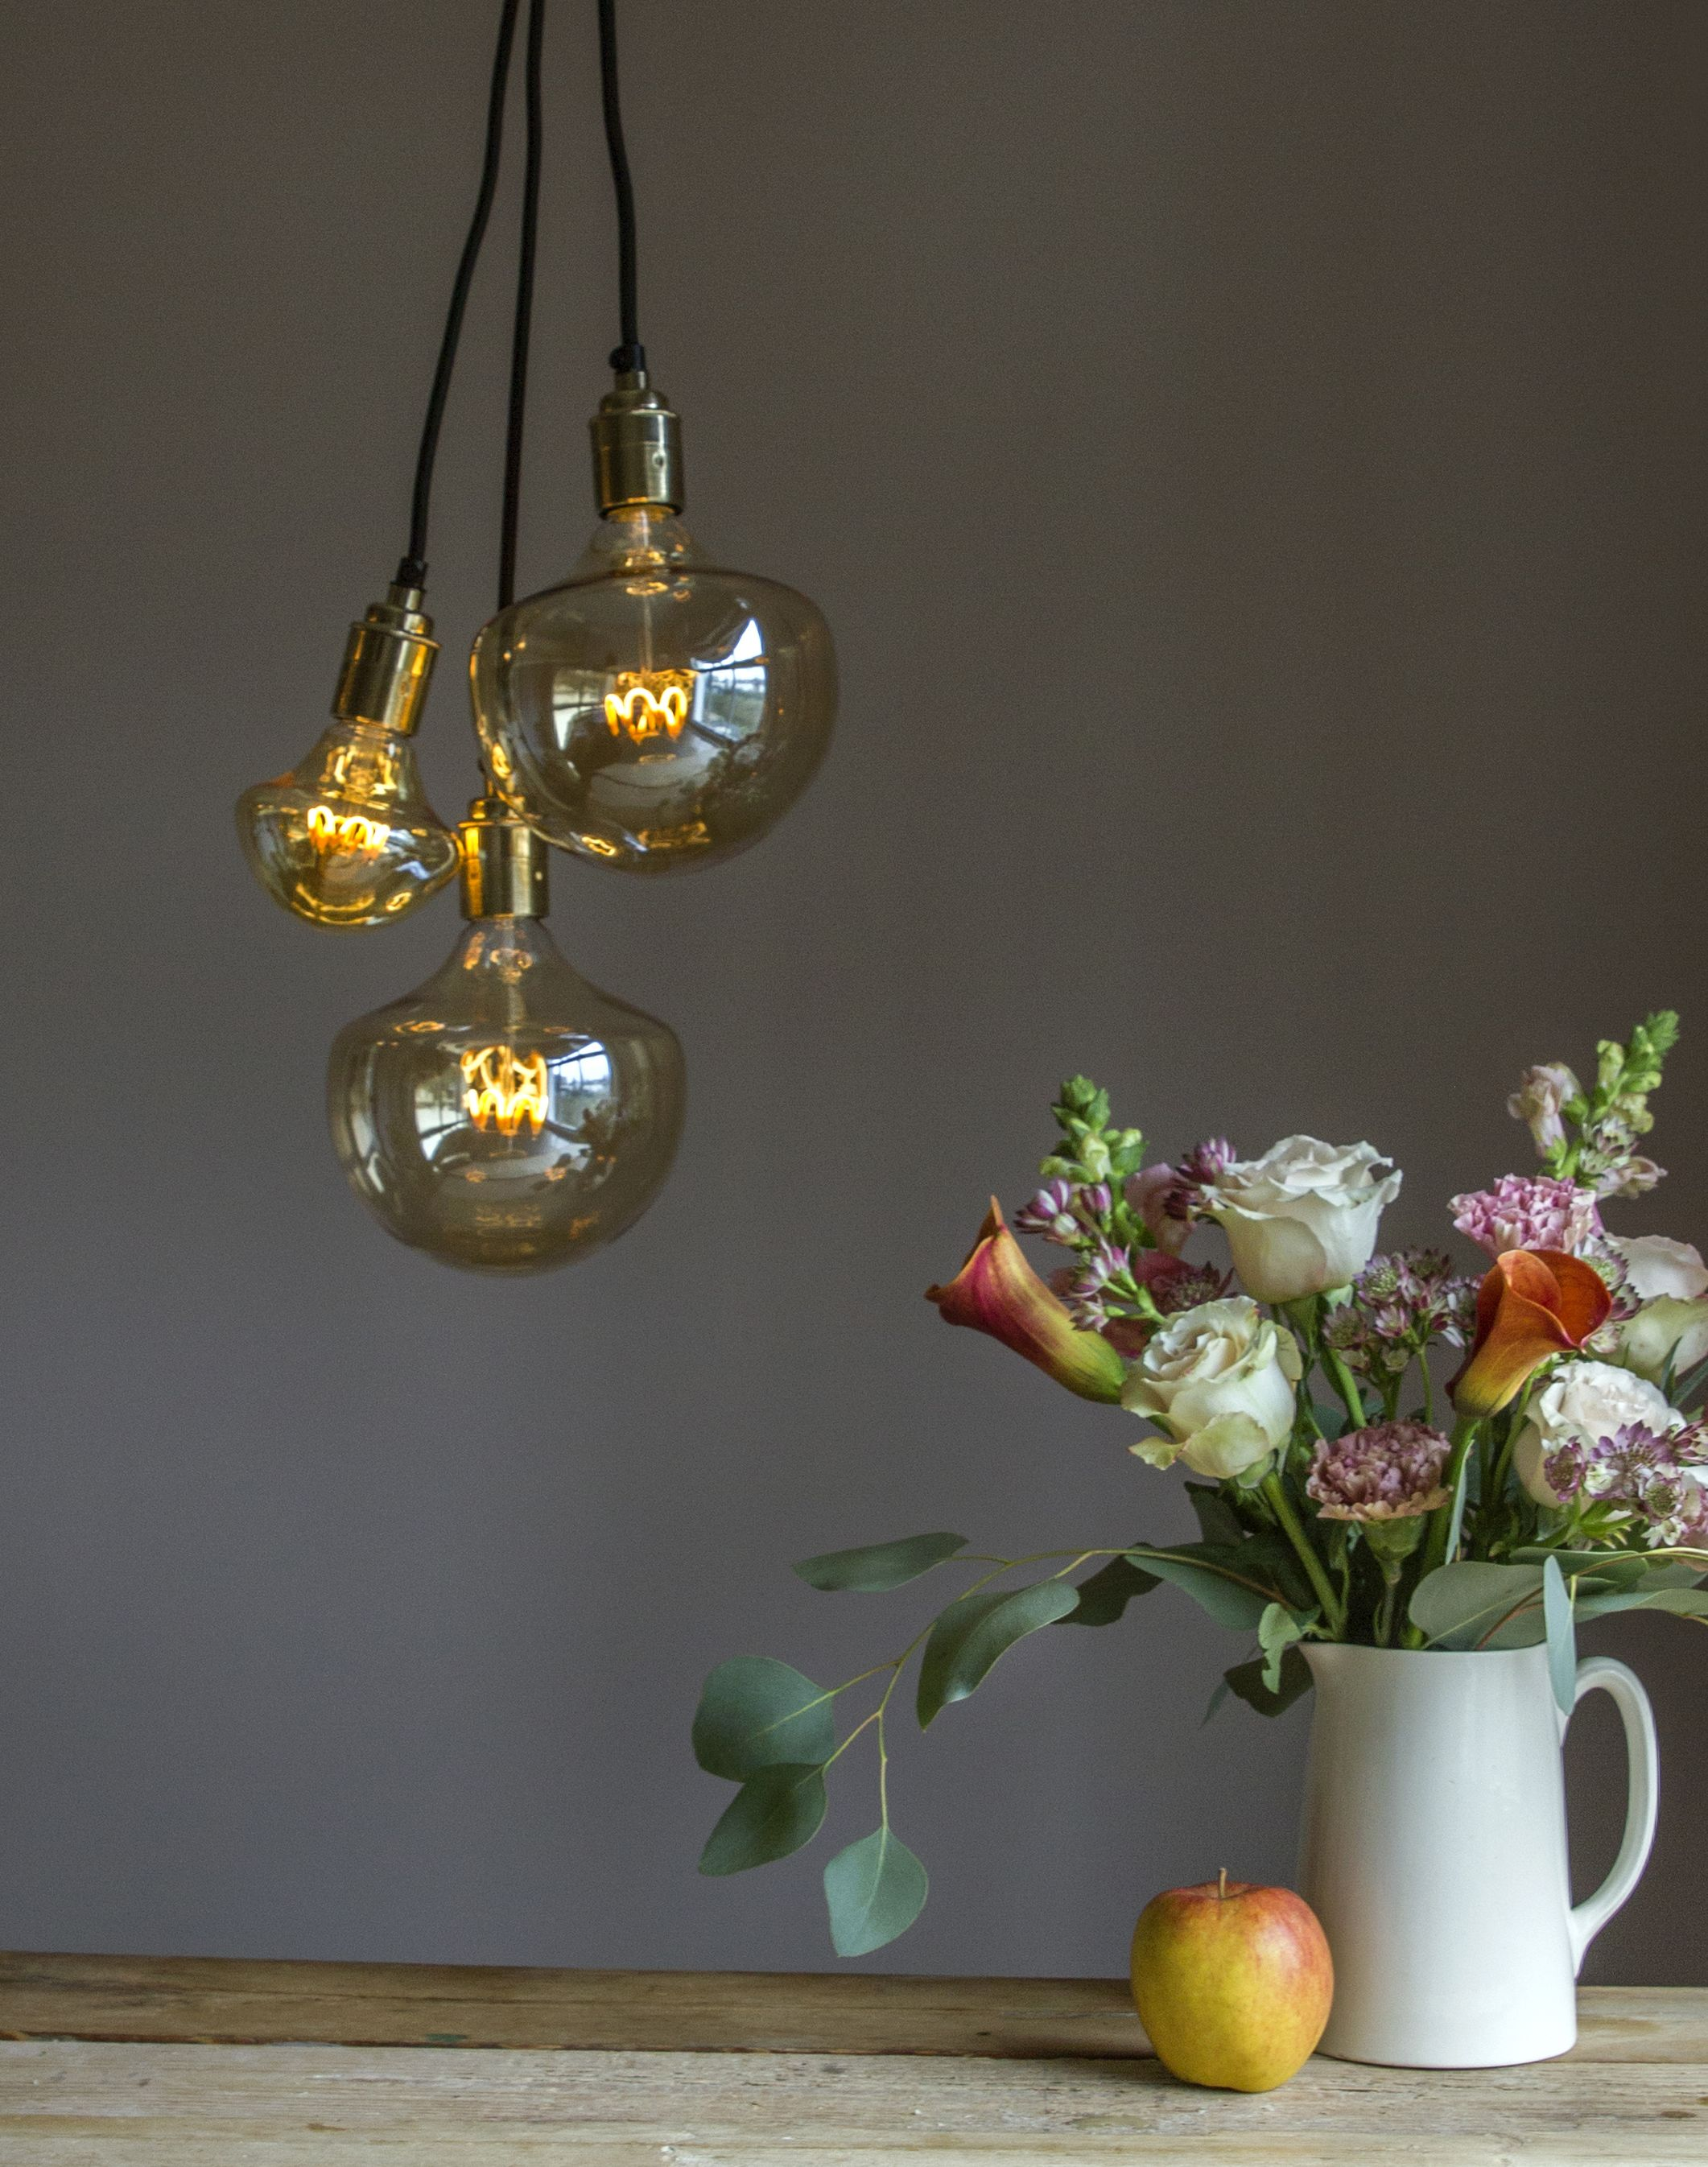 Meet Willow and Wilma - vintage bulbs for the 21st Century | Bulbs ...